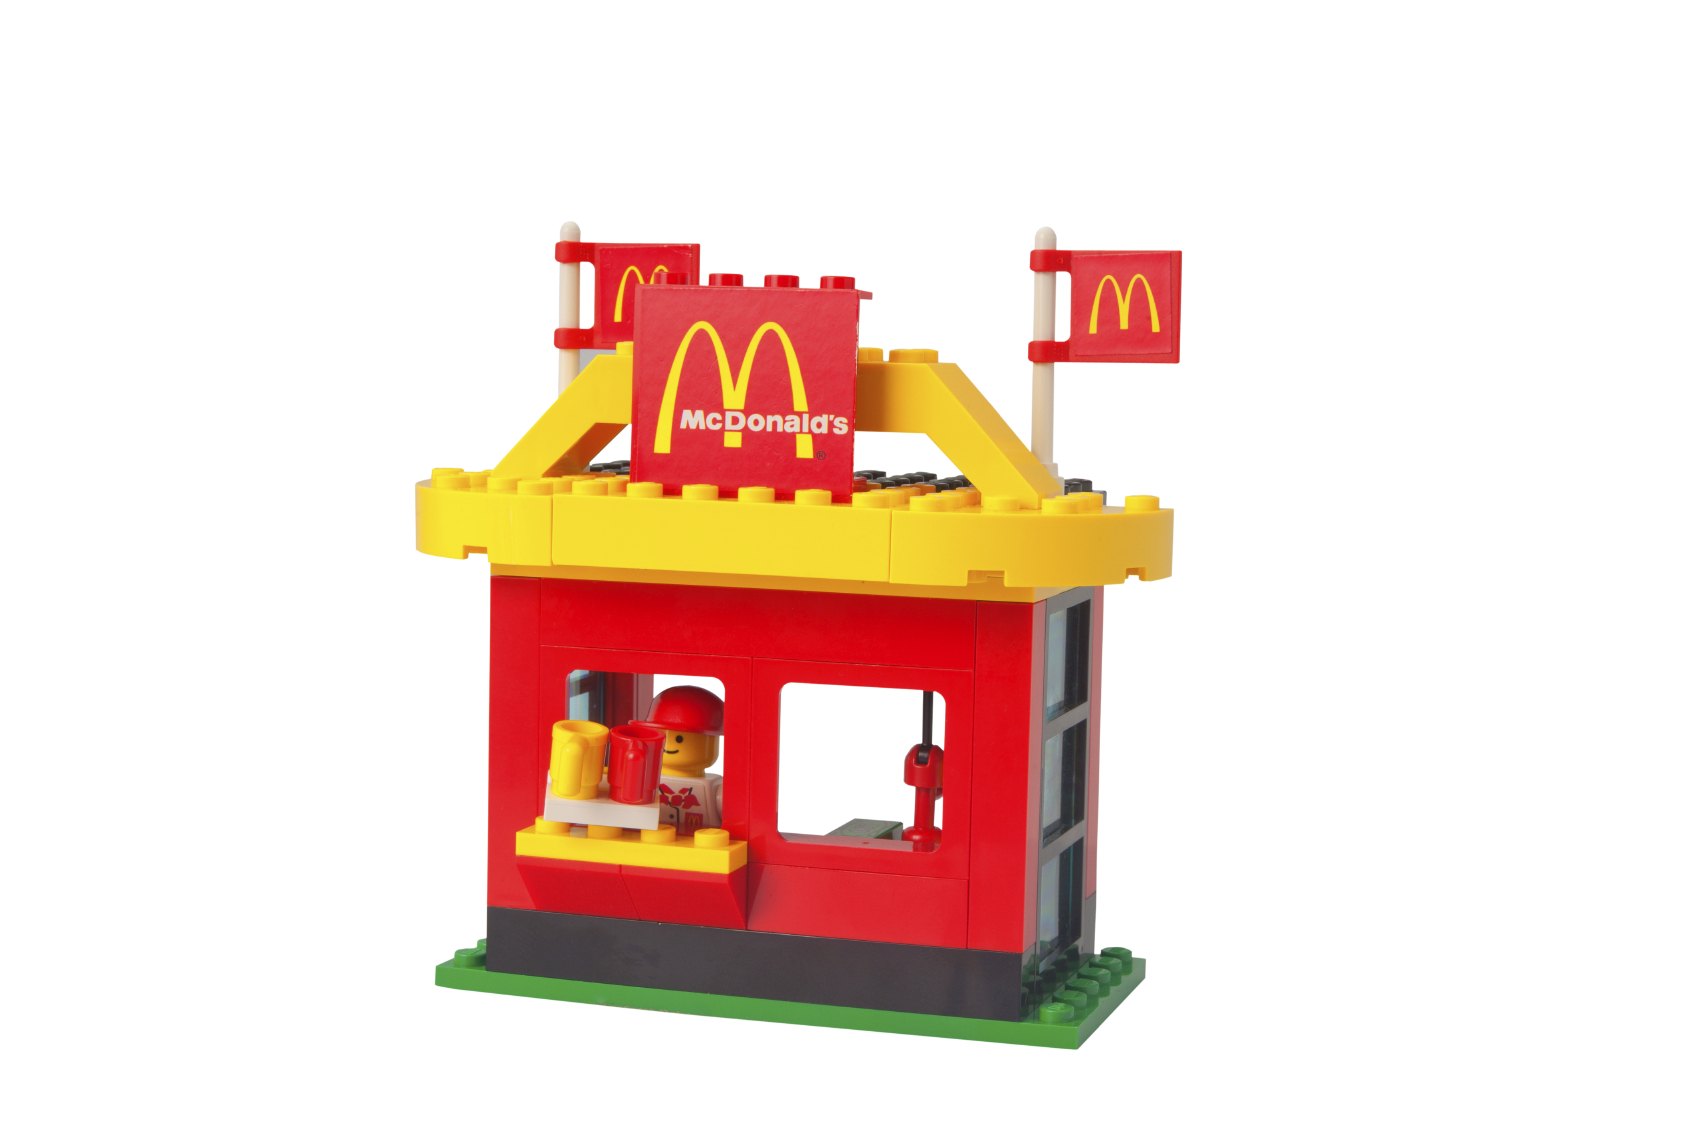 McDonald is also a world's largest supplier of toys